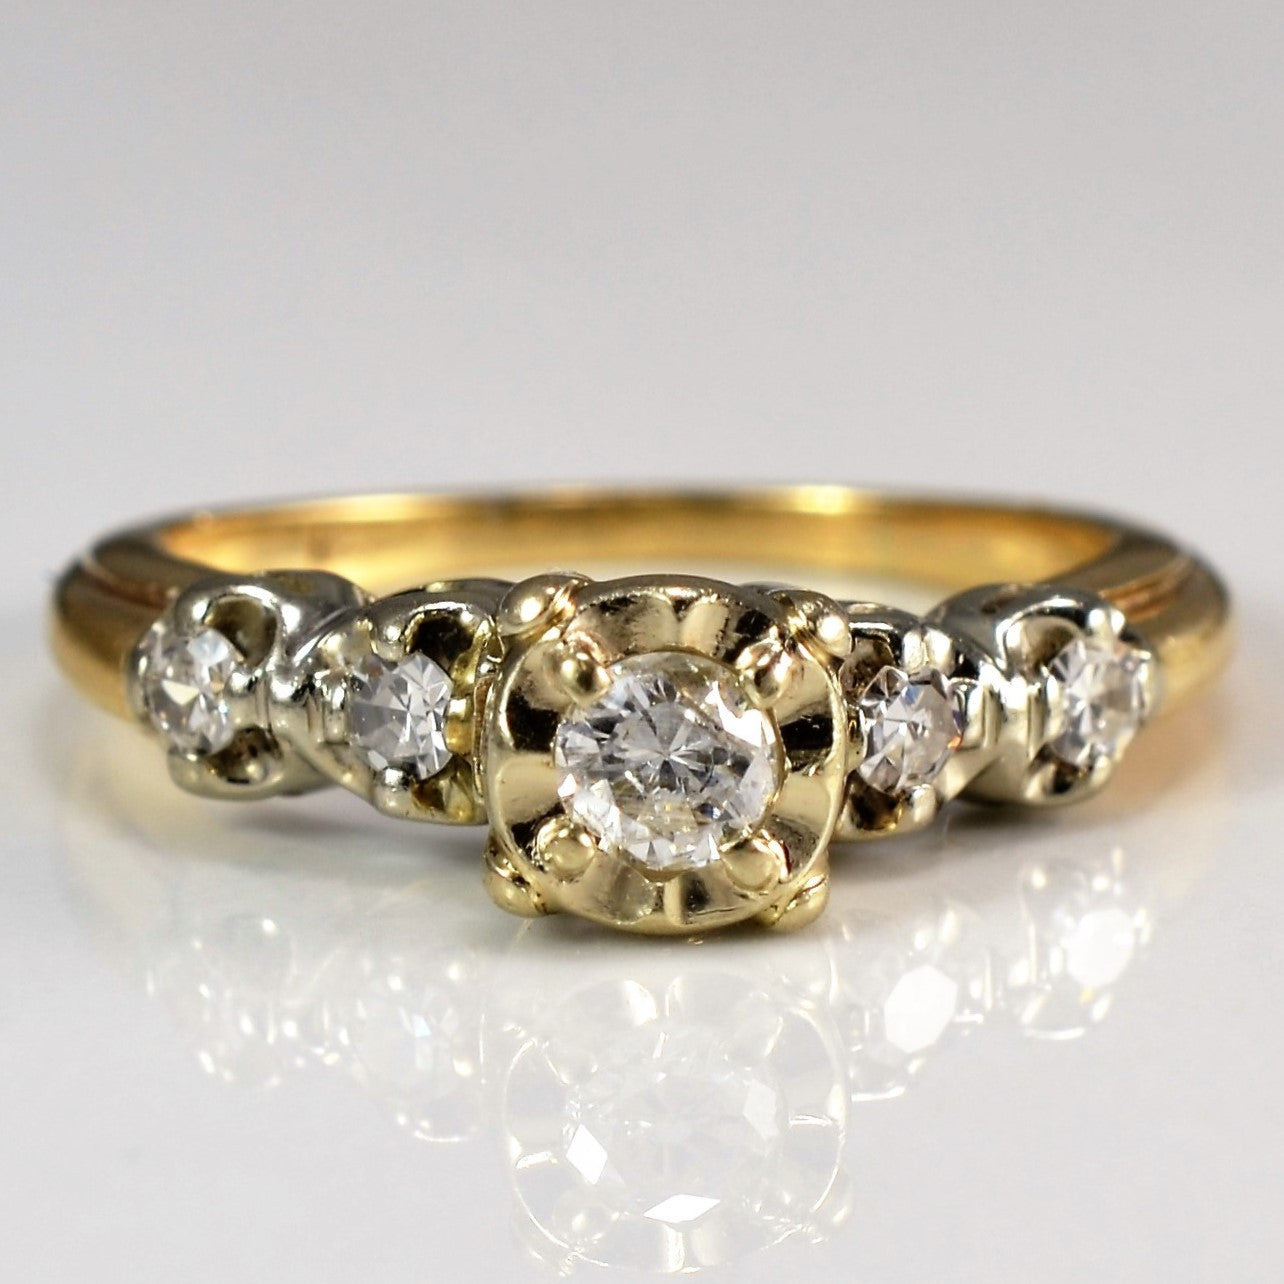 Illusion Set Engagement Ring | 0.31 ctw, SZ 5.75 |